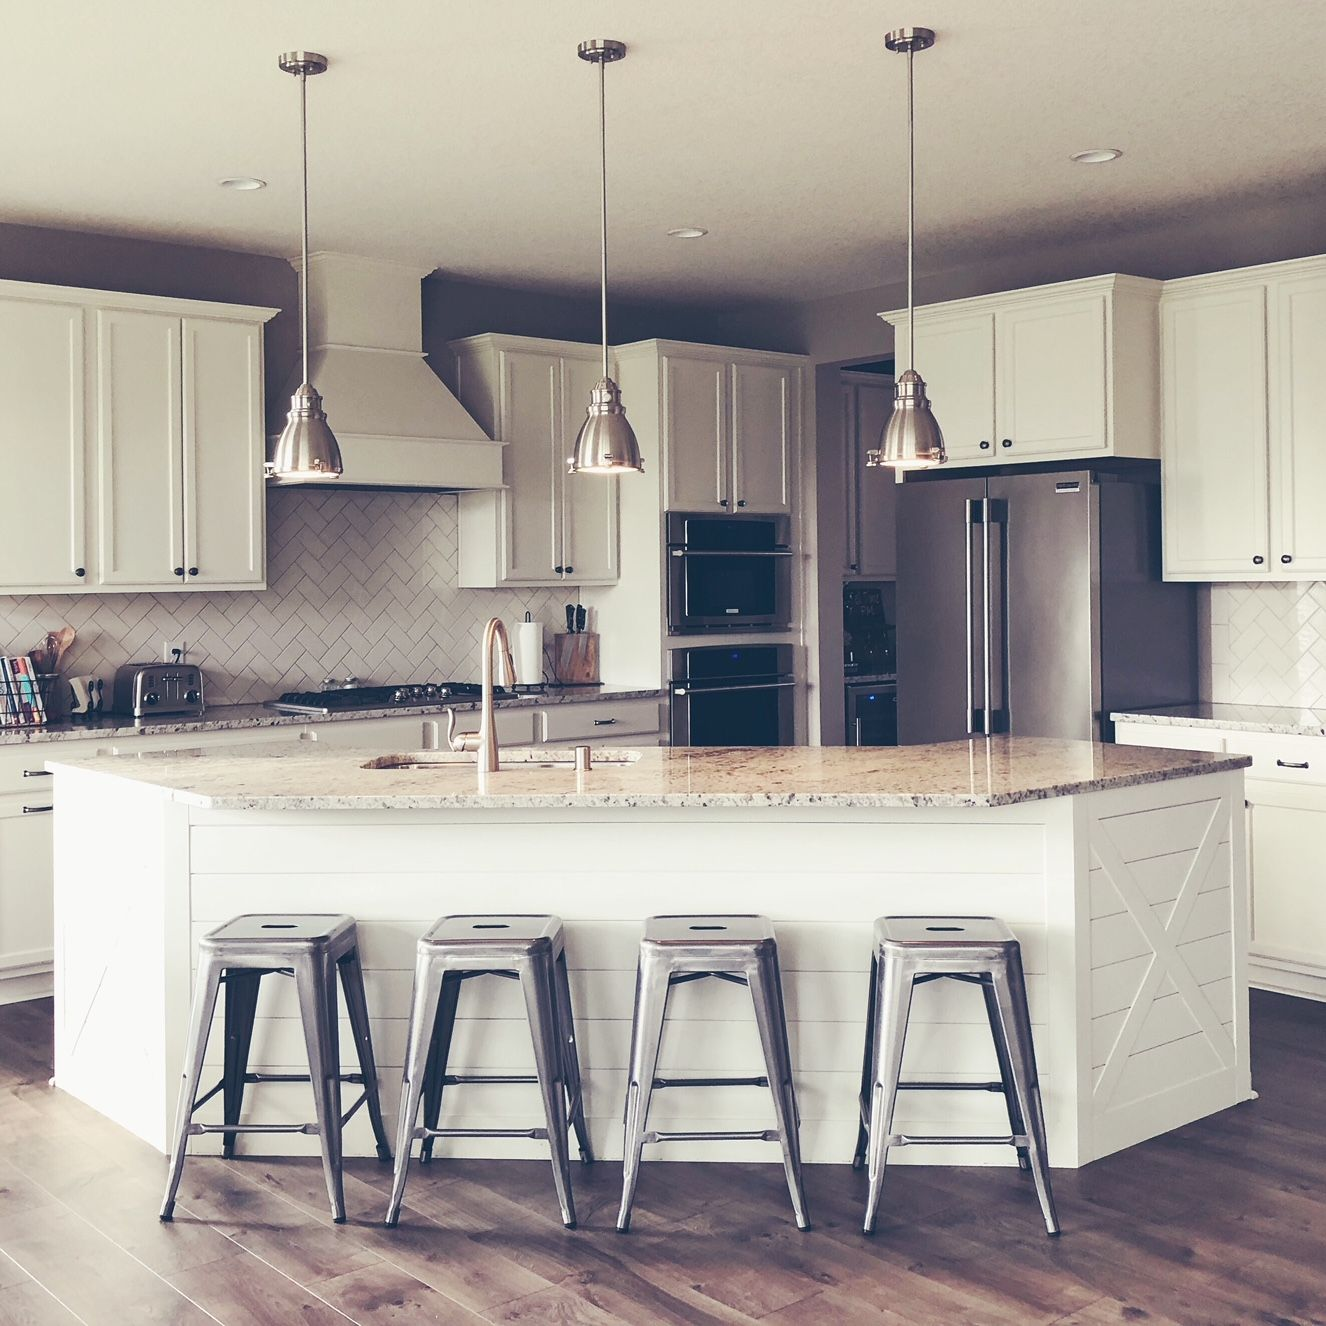 A Look At Our Corner Kitchen And Shiplap Island From Builder Grade To Farmhouse Fabulous Diy Kitchen Renovation Kitchen Renovation Kitchen Remodel